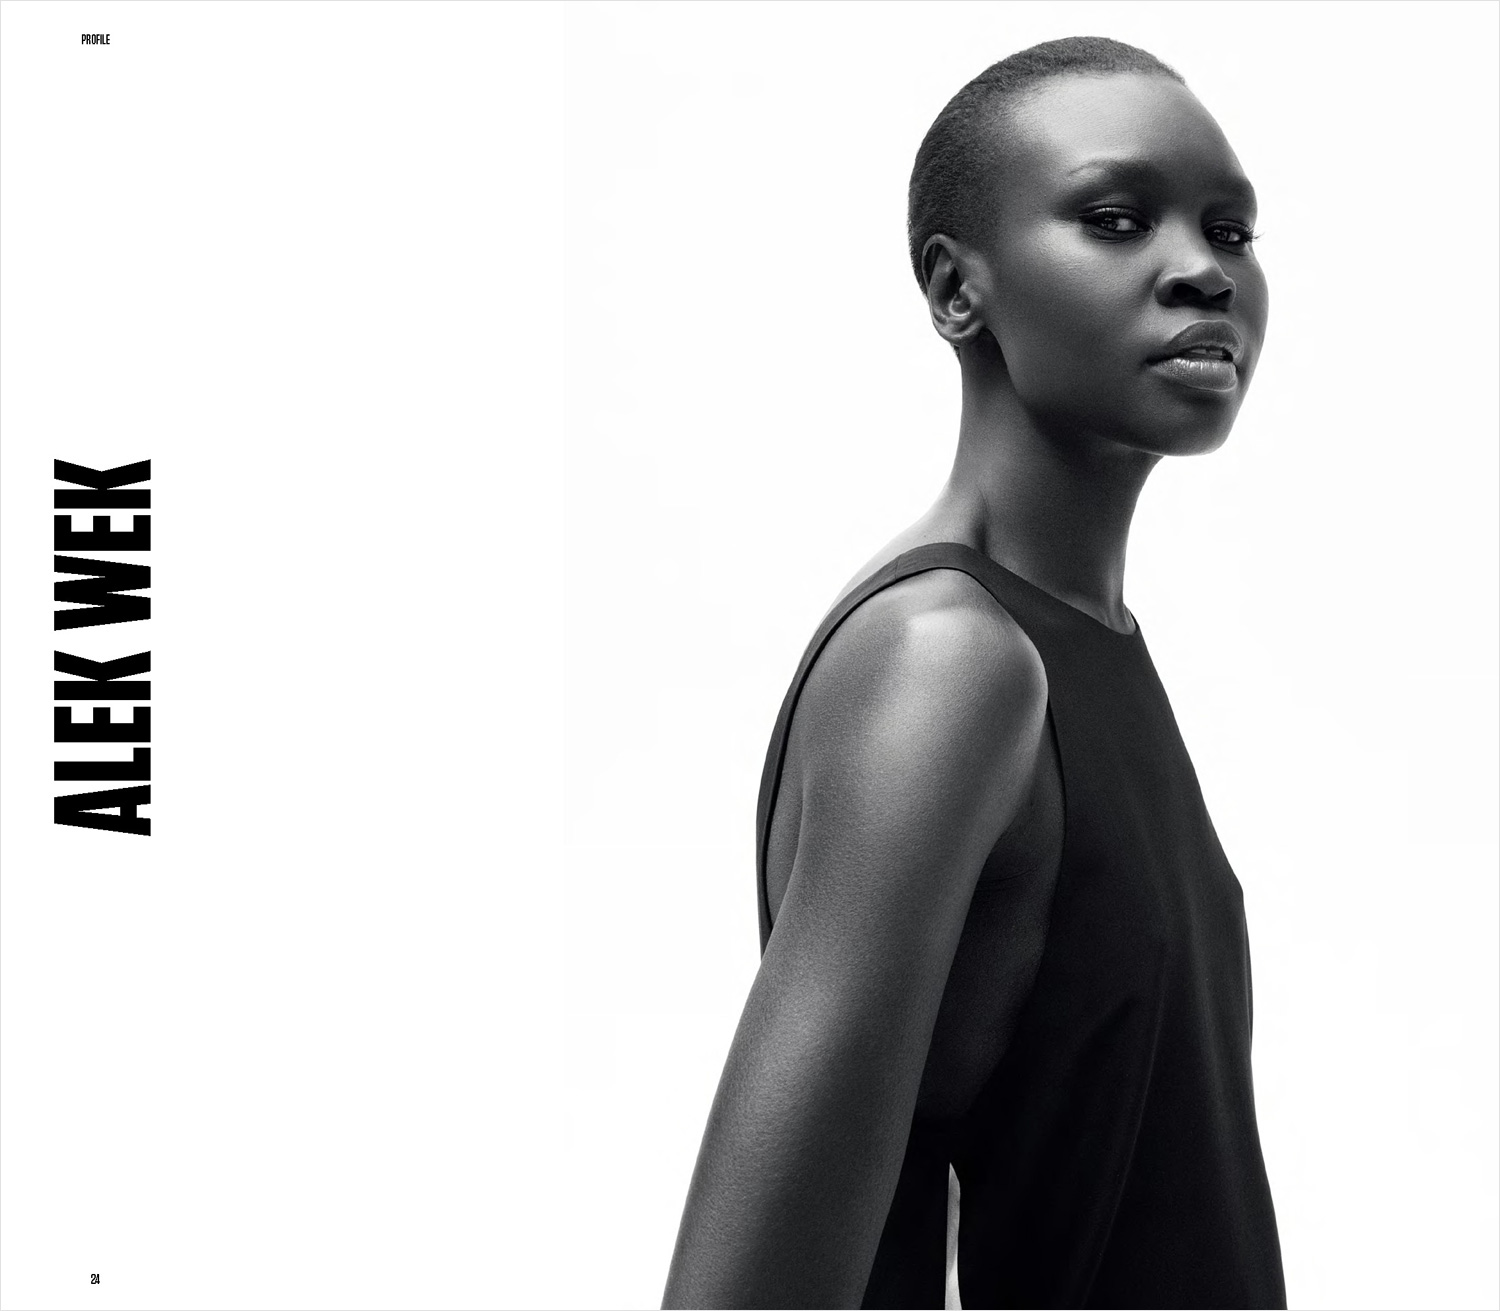 Alek Wek Photos With over million images and real time event coverage from coast to coast, ImageCollect is the only celebrity photo site you'll ever need. Sort by A - Z Z - A by Date View 20 per page 40 per page 60 per page 80 per page.